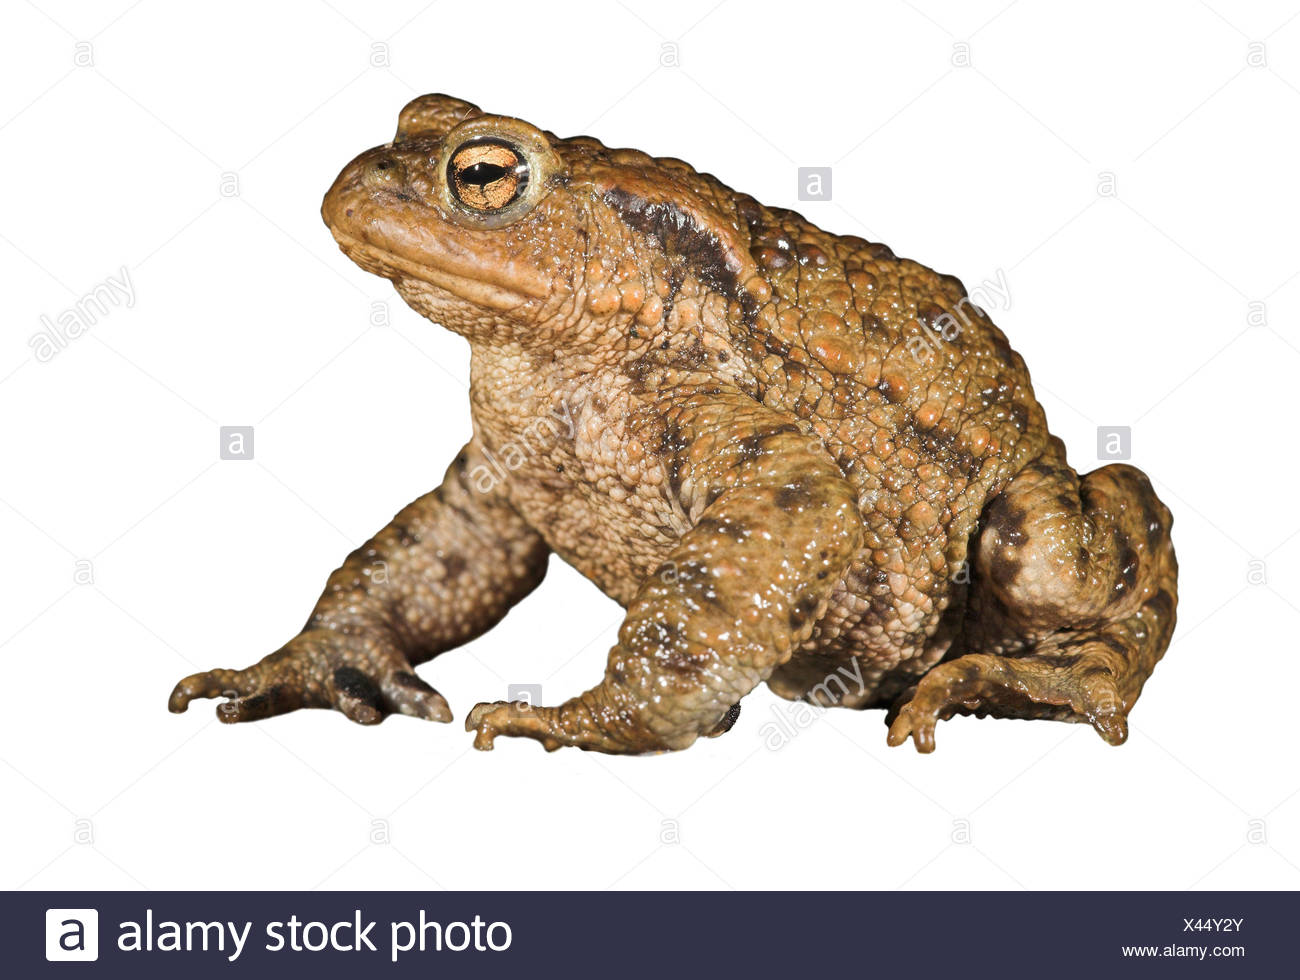 common toad against white background - Stock Image